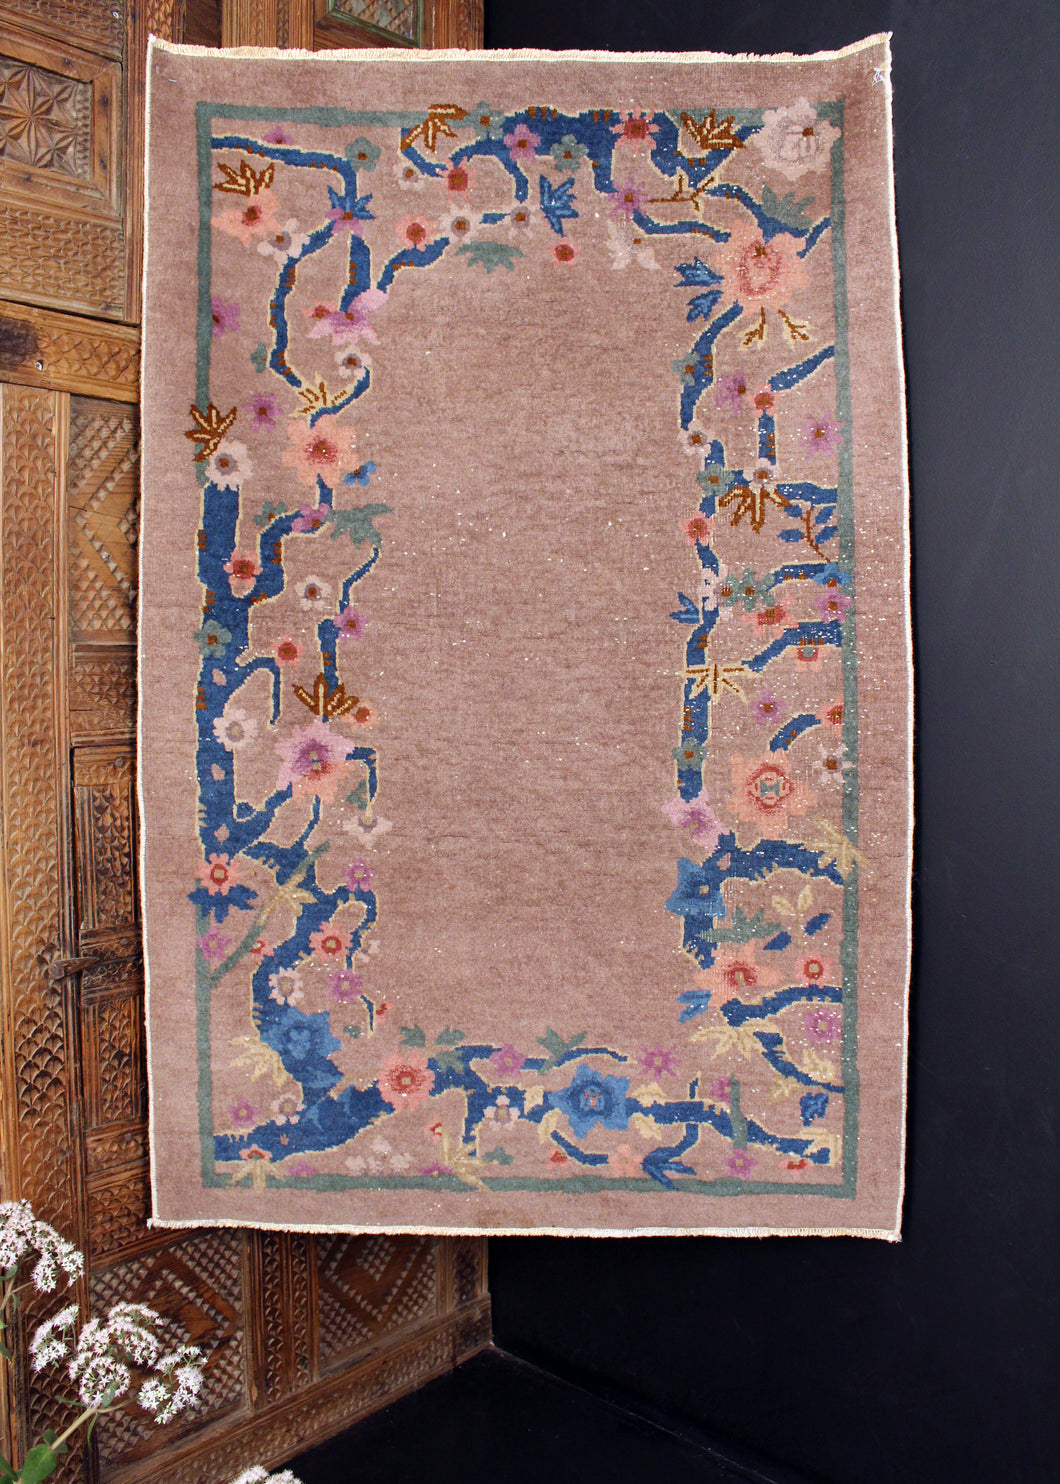 1930s Chinese deco rug featuring a mauve field with a border of colorful flowers growing on winding indigo branches.